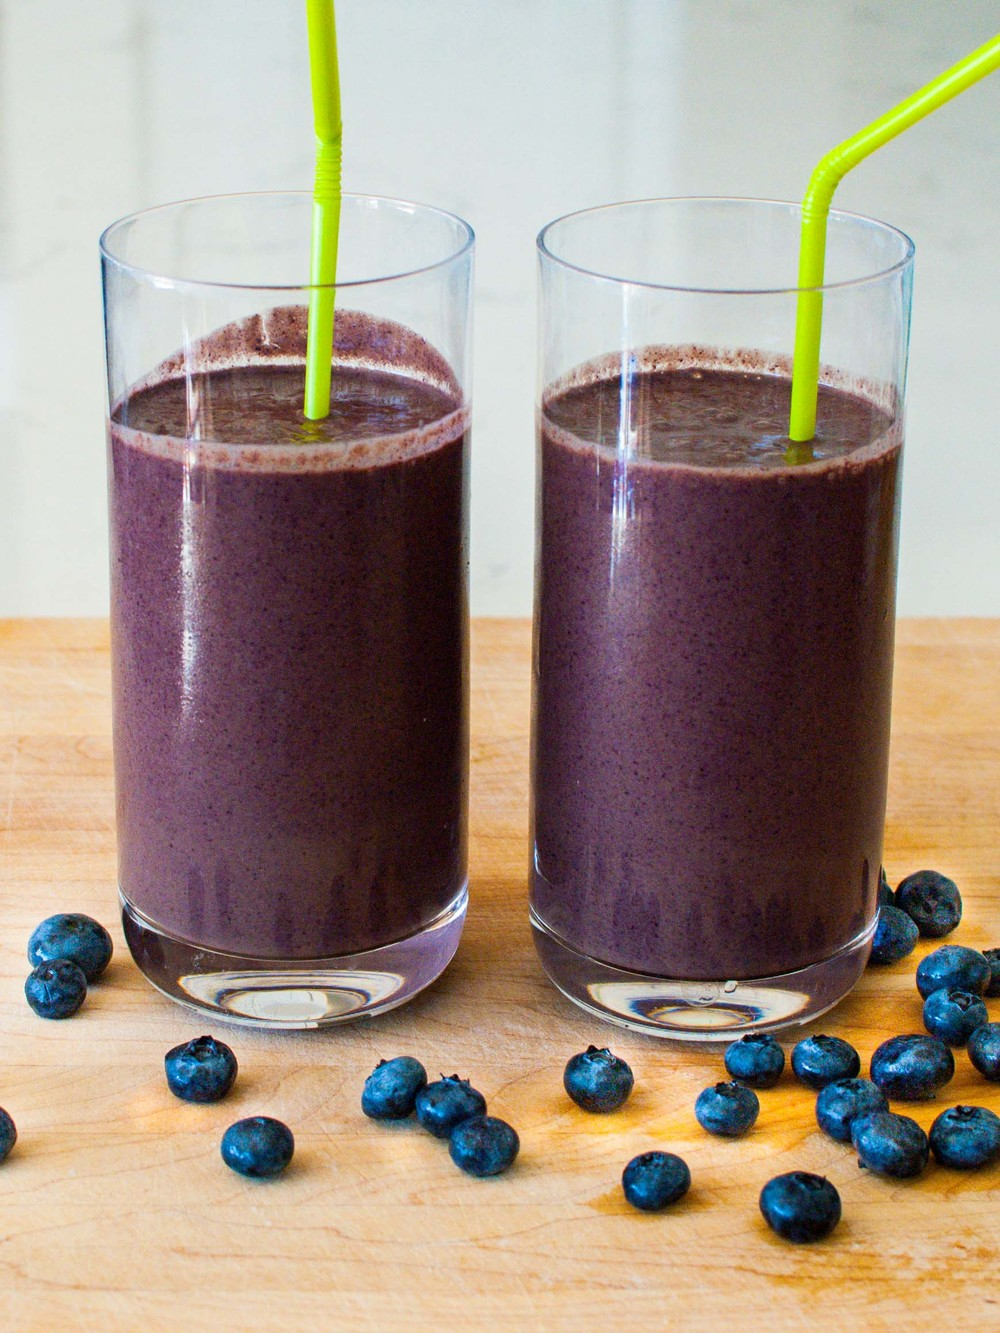 Purple Rain Smoothie - blueberry, banana, and cacao